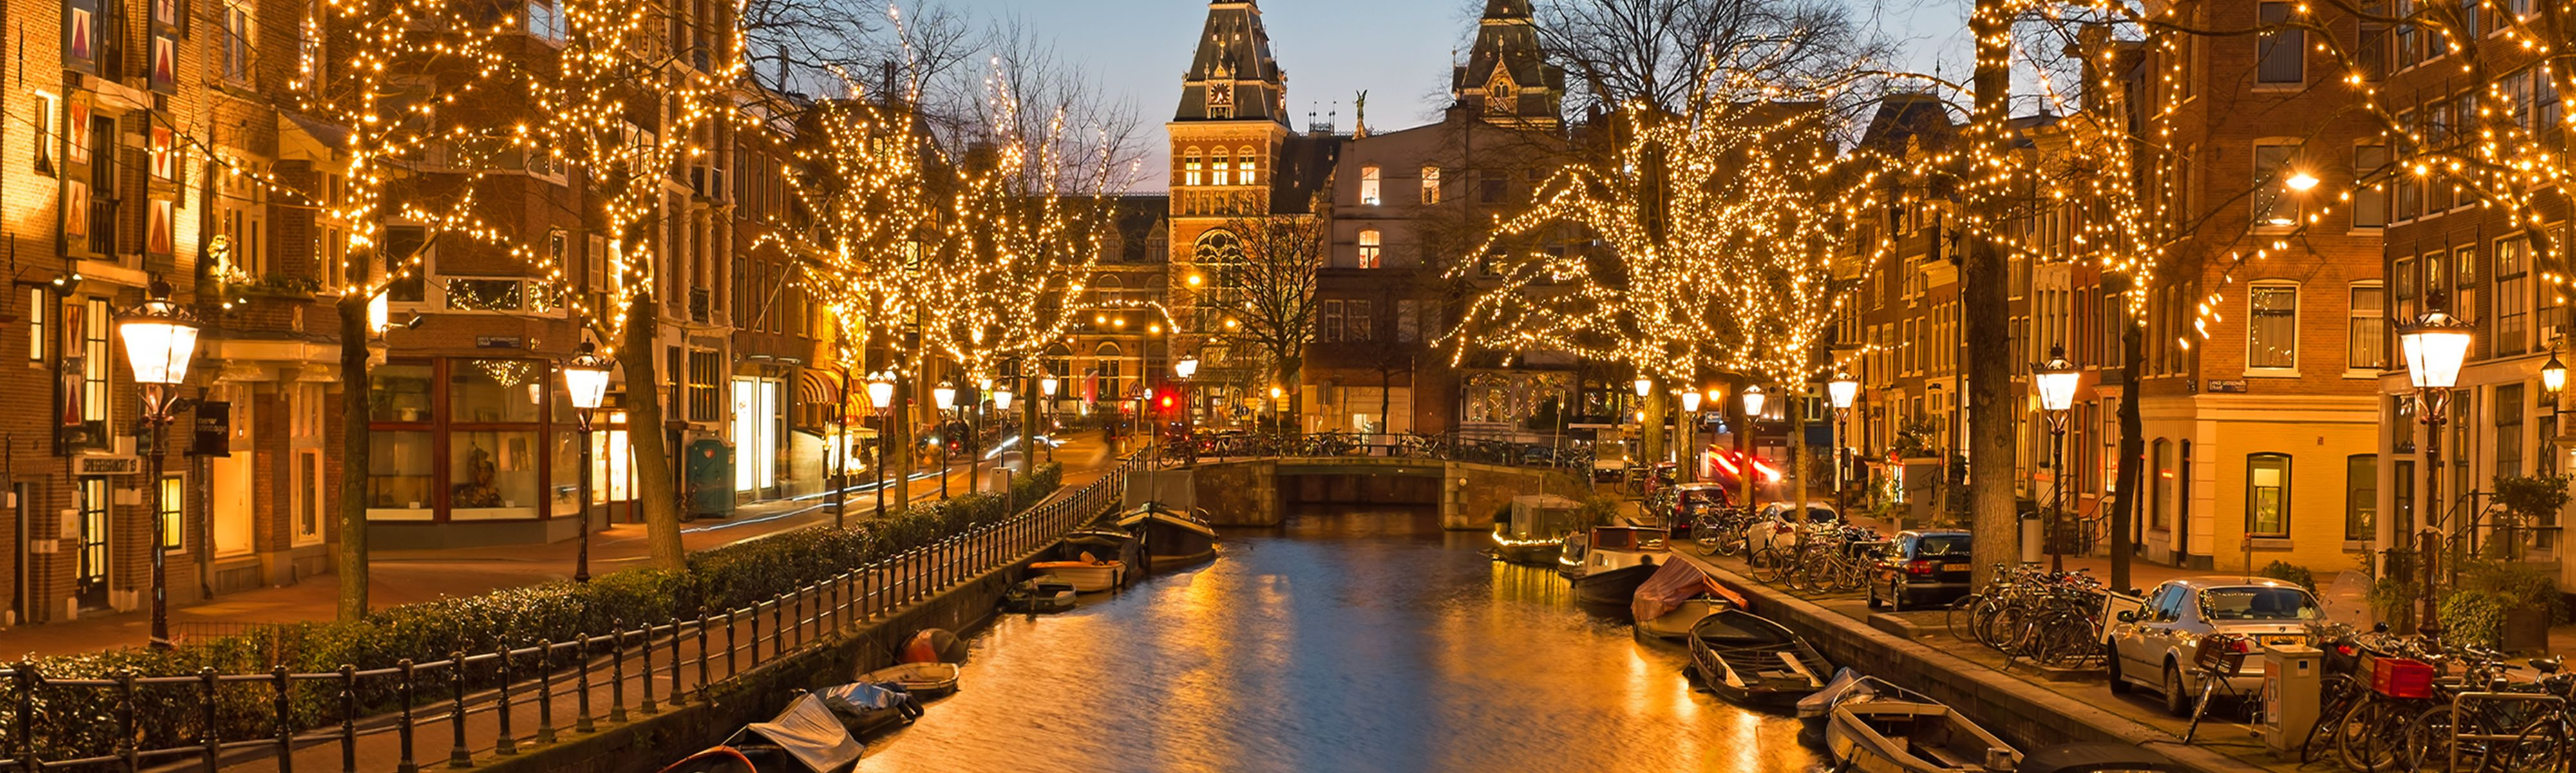 Christmas In Europe.Christmas Markets Of Northern Europe Amsterdam To Stockholm